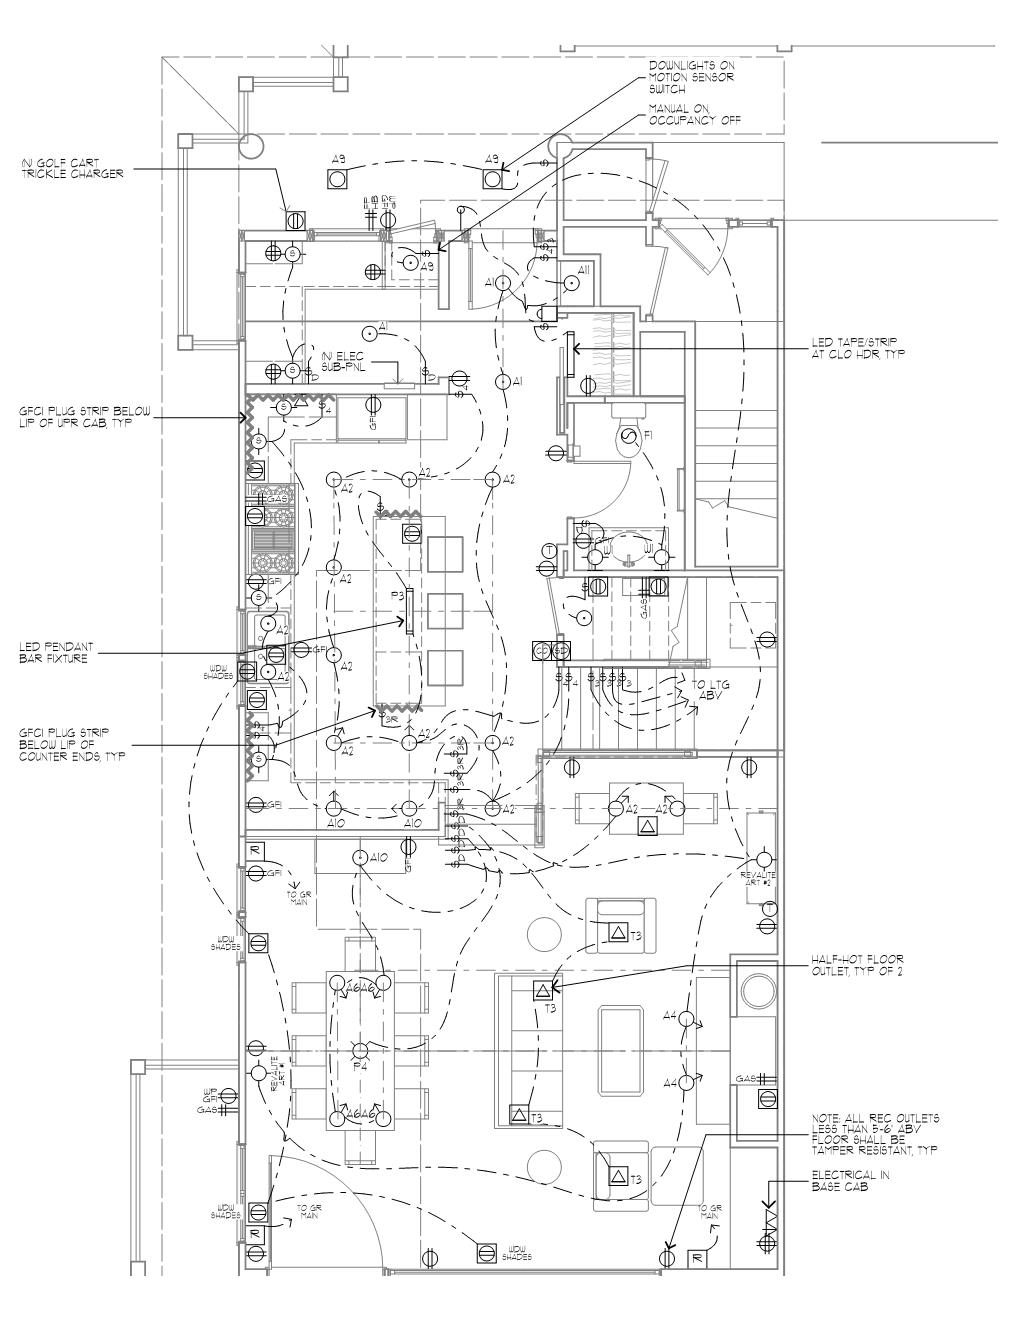 Trish Odenthal Lighting Design - Lighting Plan